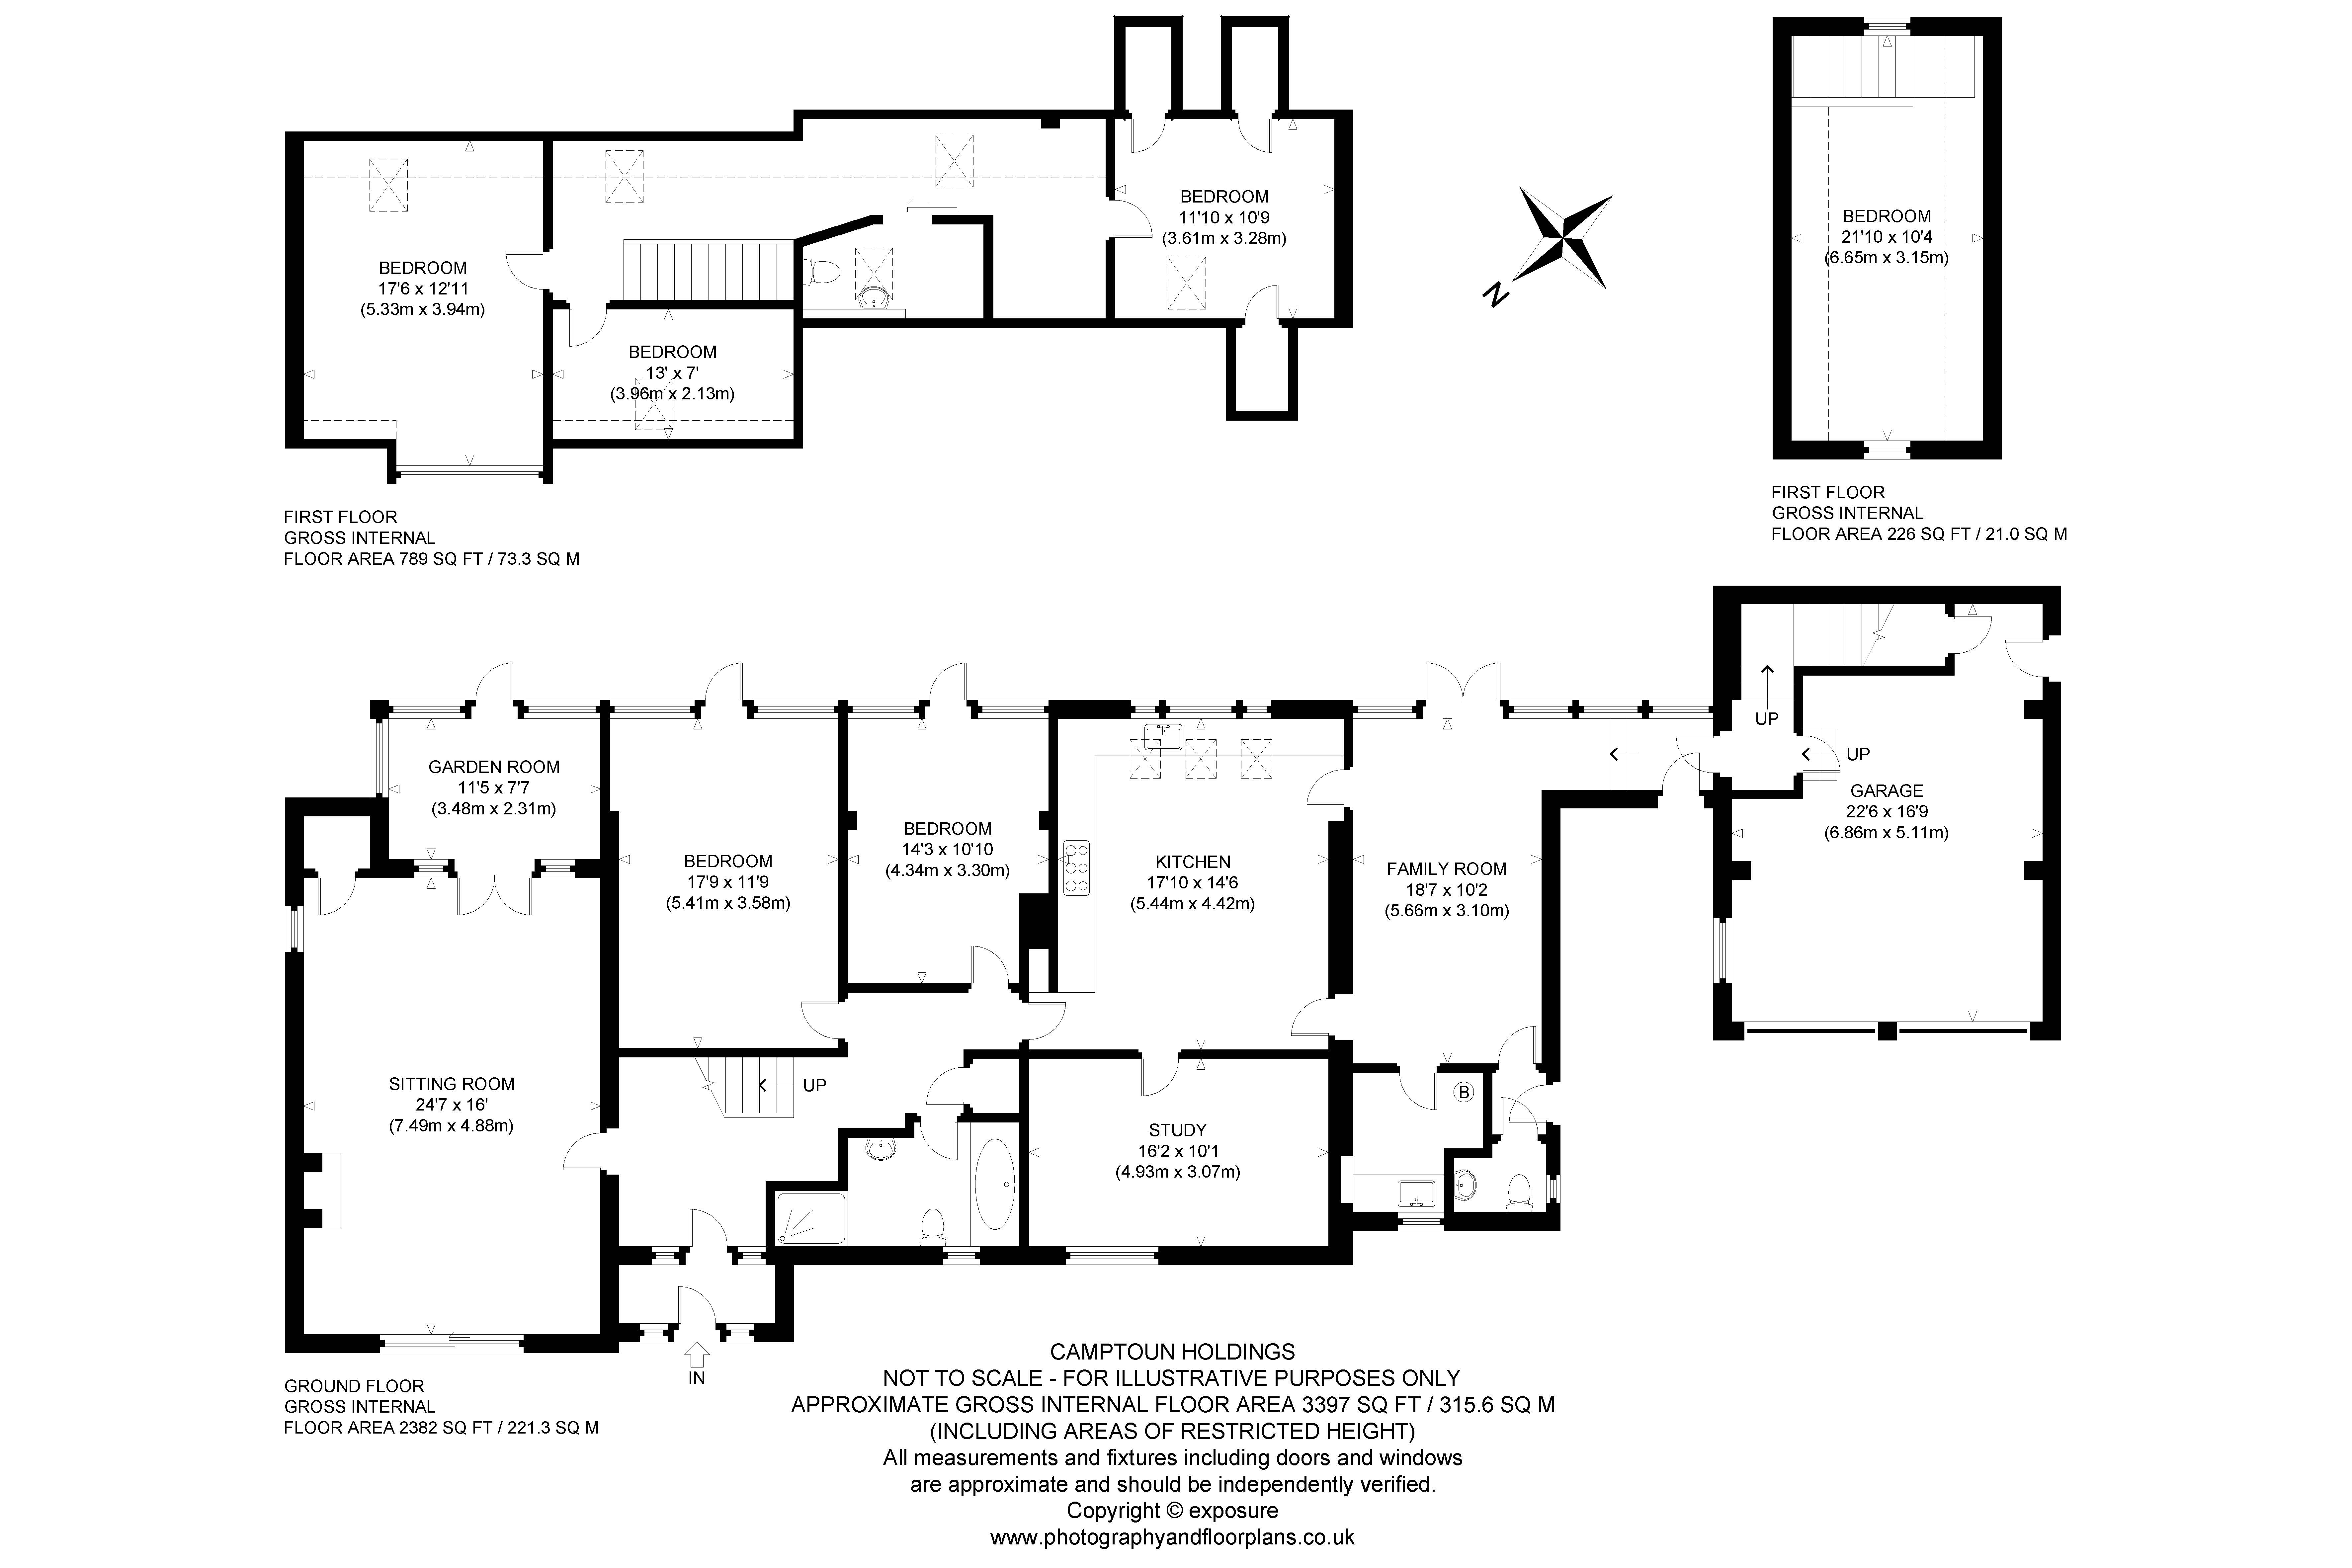 Floorplans for 11 Camptoun Holdings, Drem, North Berwick, EH39